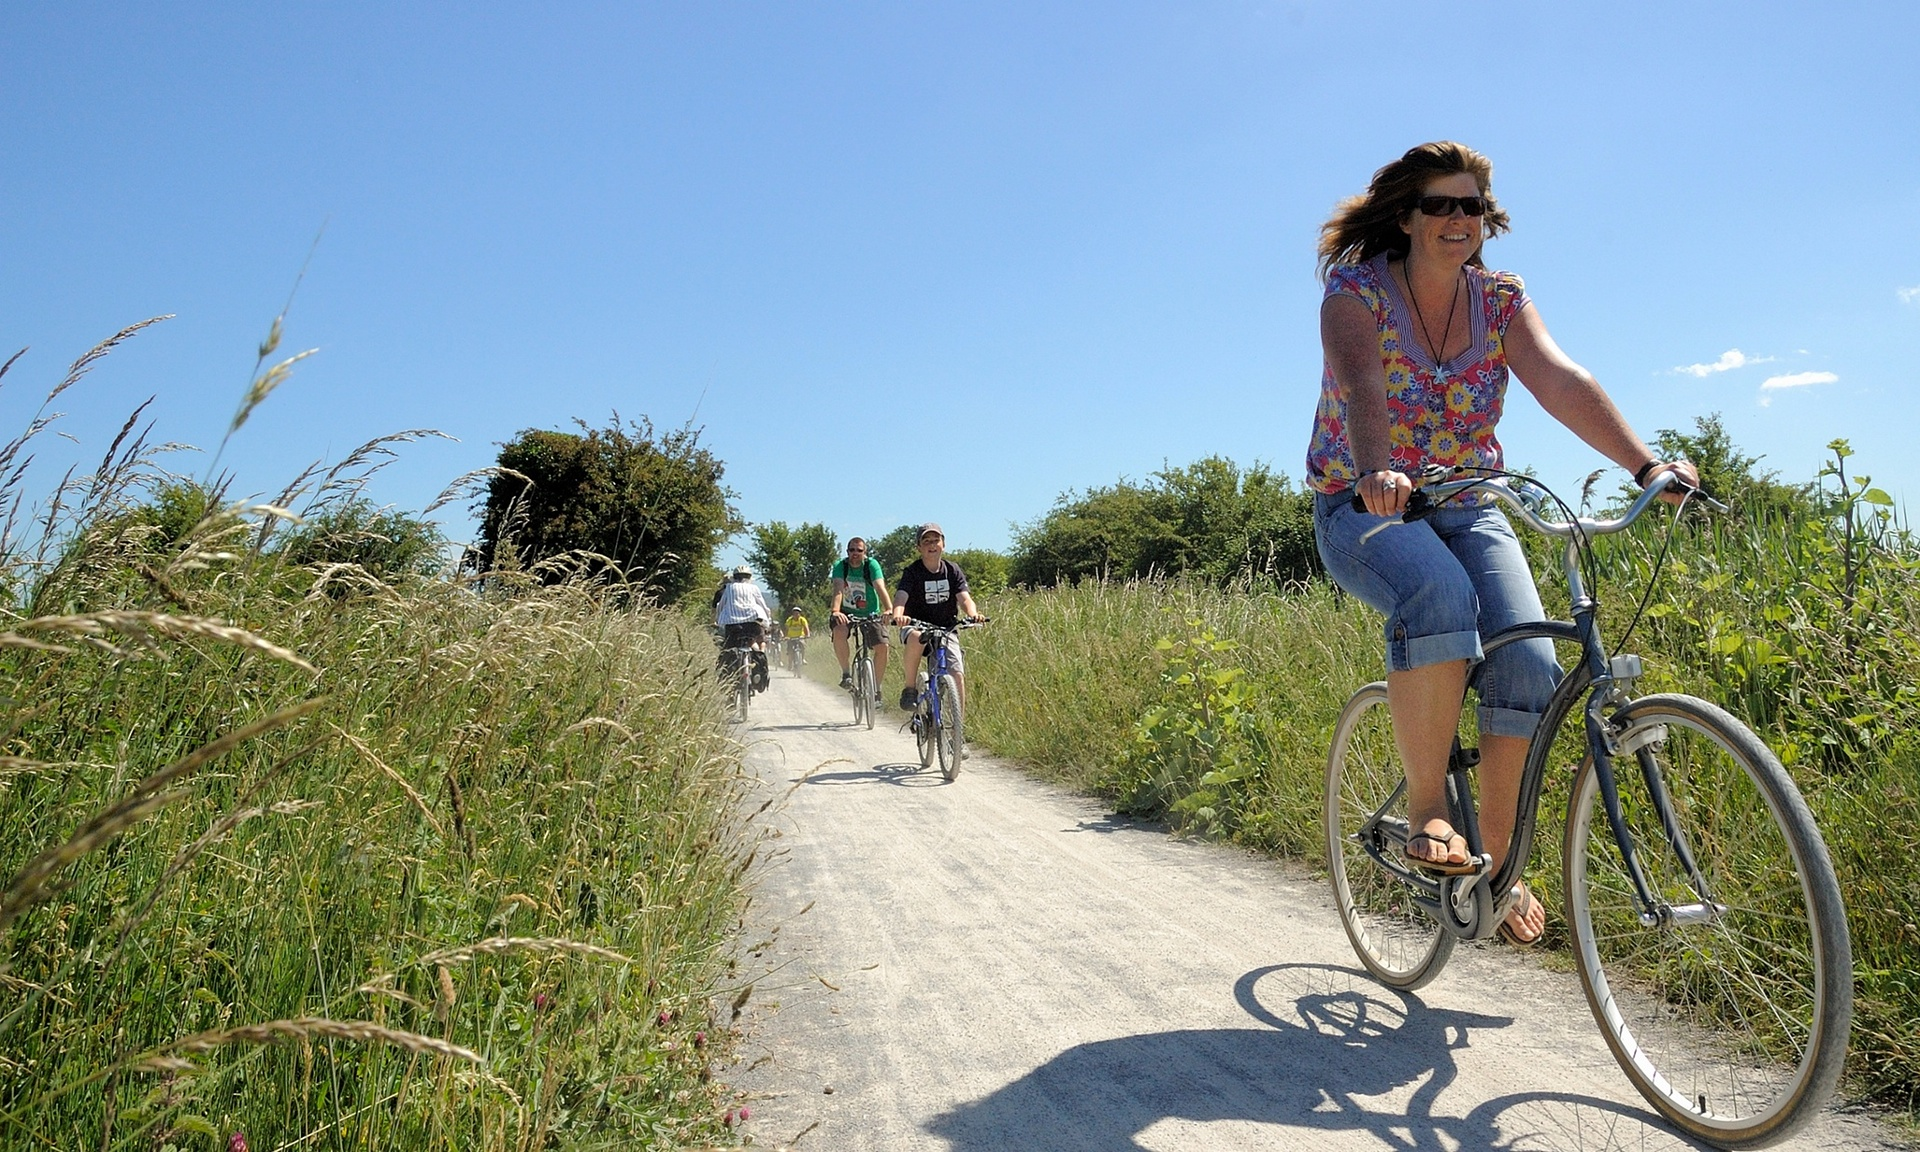 Five creative council cycling schemes to get people on their bikes